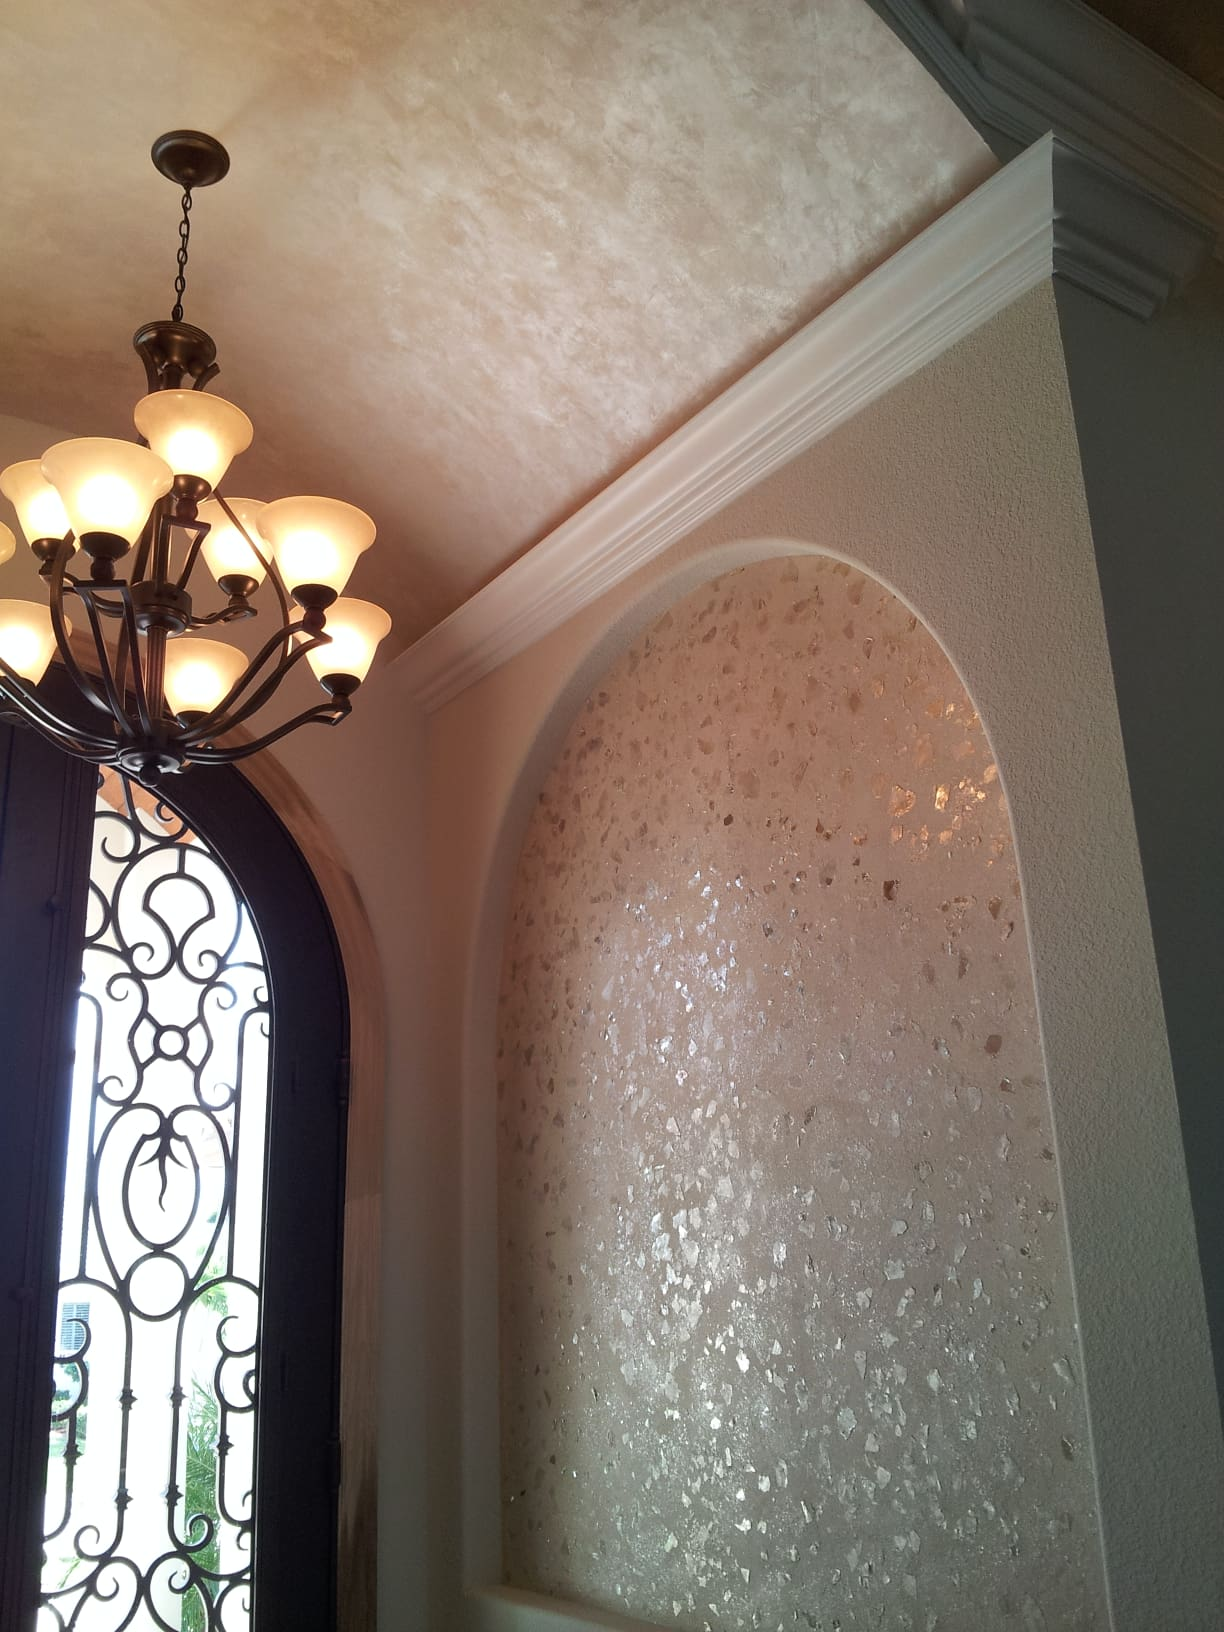 Mica Niche and Pearl plaster ceiling